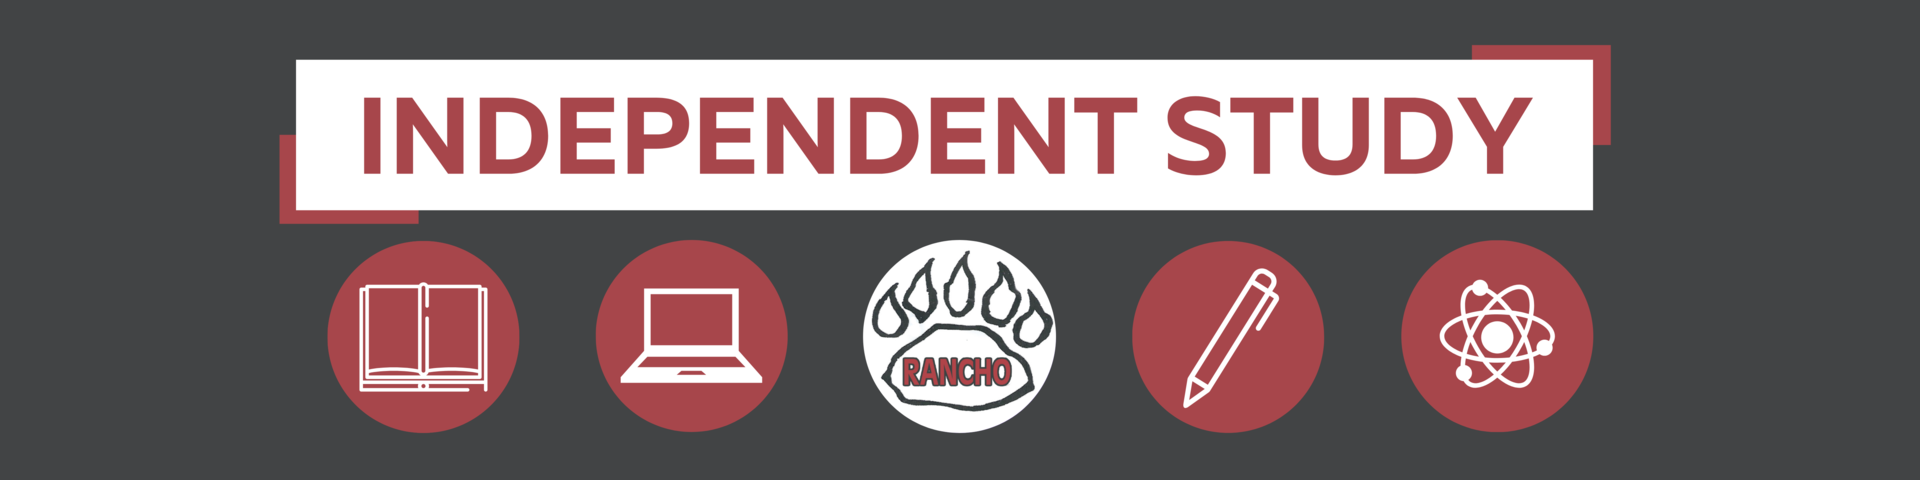 Rancho Independent Study